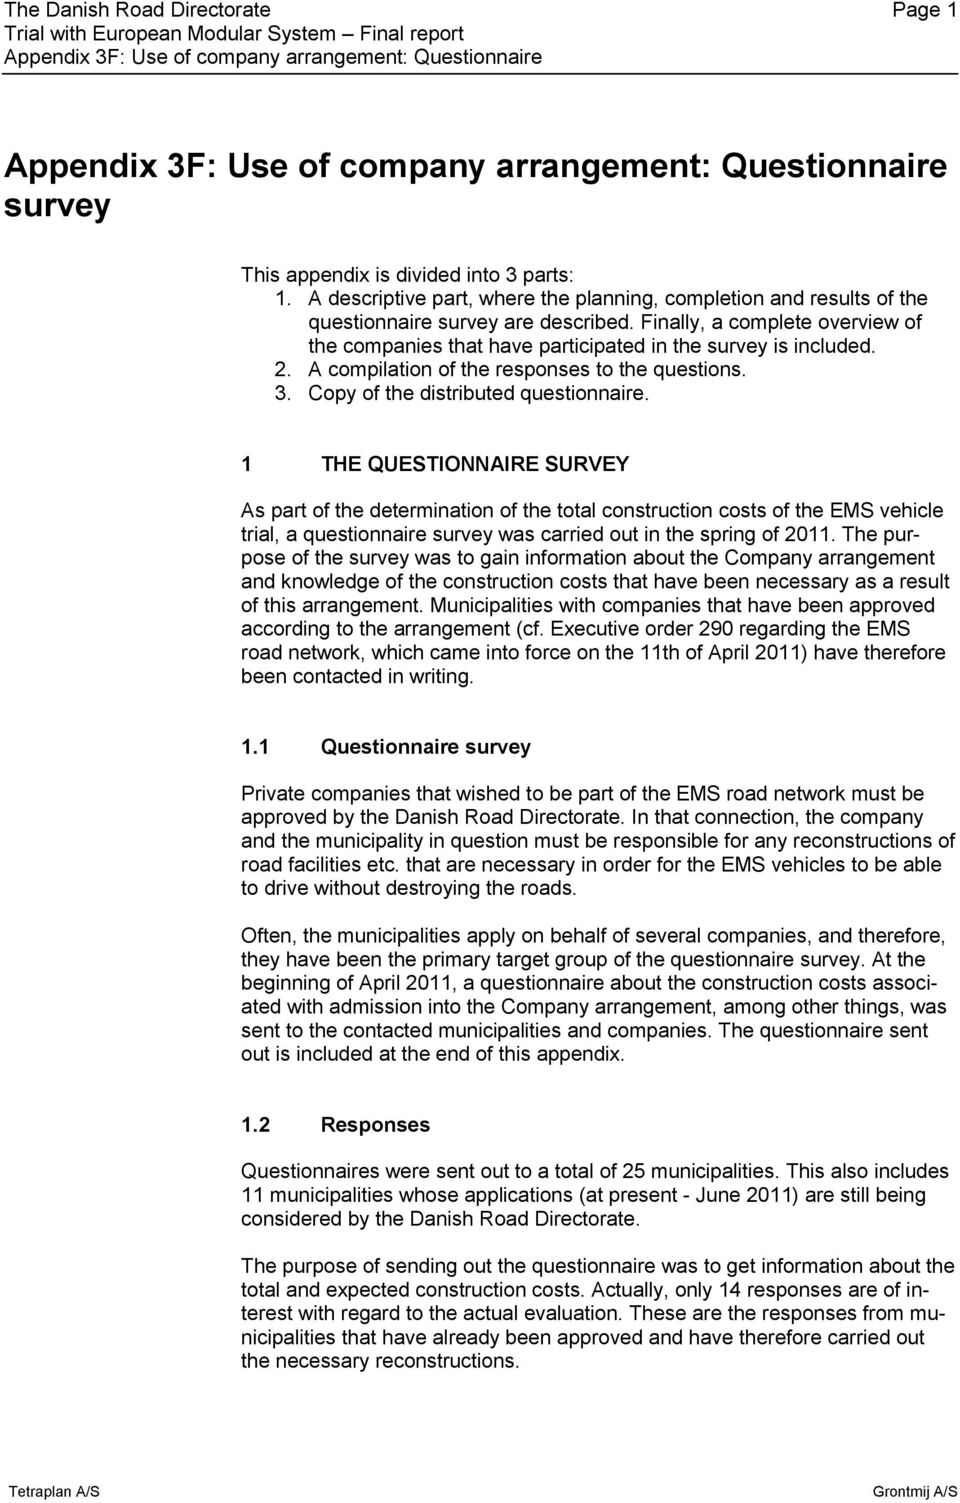 1 THE QUESTIONNAIRE SURVEY As part of the determination of the total construction costs of the EMS vehicle trial, a questionnaire survey was carried out in the spring of 2011.